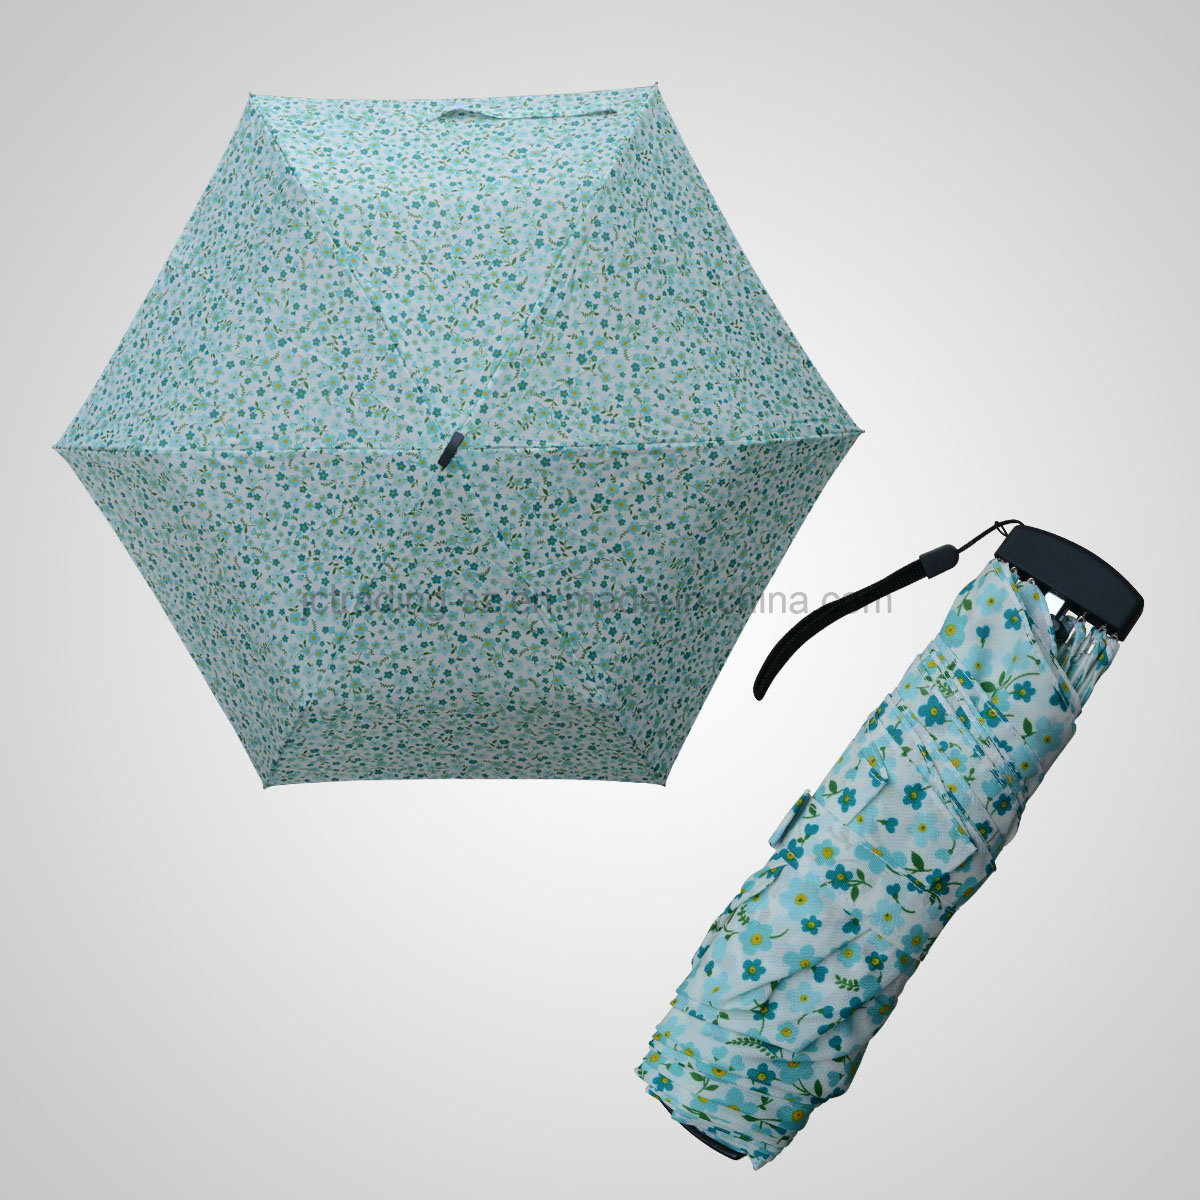 3 Fold Manual Open Mini Flat Fashion Advertising and Promotional Umbrella (JF-MPC301)